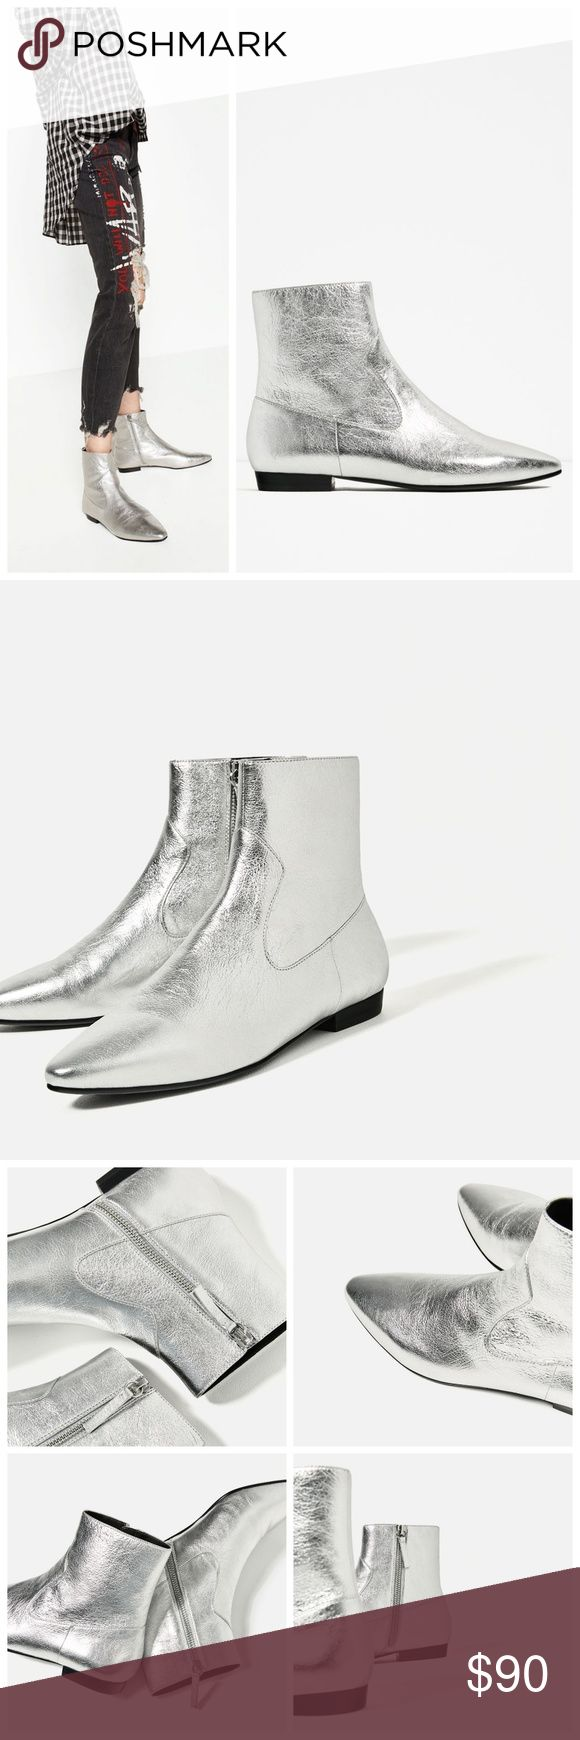 """ZARA Silver LEATHER Laminated Heel FLAT BOOT 37 Flat silver-tone genuine leather flat boots. Elongated pointed toe. Side zip closure. Very mod 1960's.  Brand new with tags. Comes from a new smoke-free home.  BRAND: Zara. SIZE: 37. OUTSOLE LENGTH: 9.75"""". OUTSOLE WIDTH: 3"""". HEEL HEIGHT: 0.675"""". Zara Shoes Ankle Boots & Booties"""